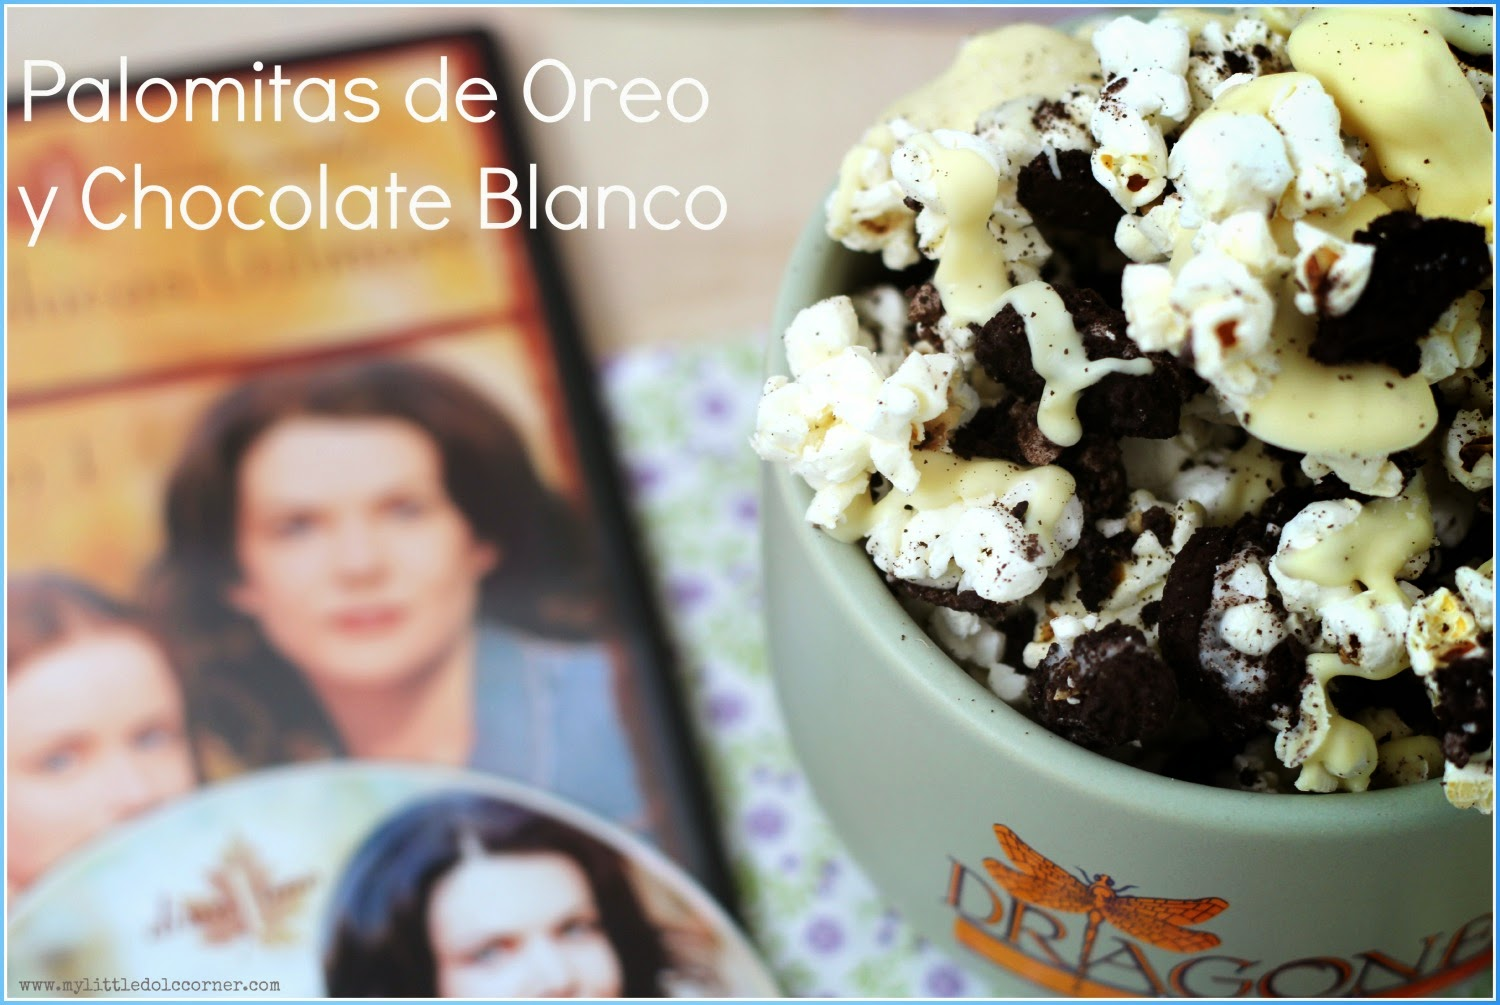 palomitas_de_oreo_y_chocolate_blanco_3